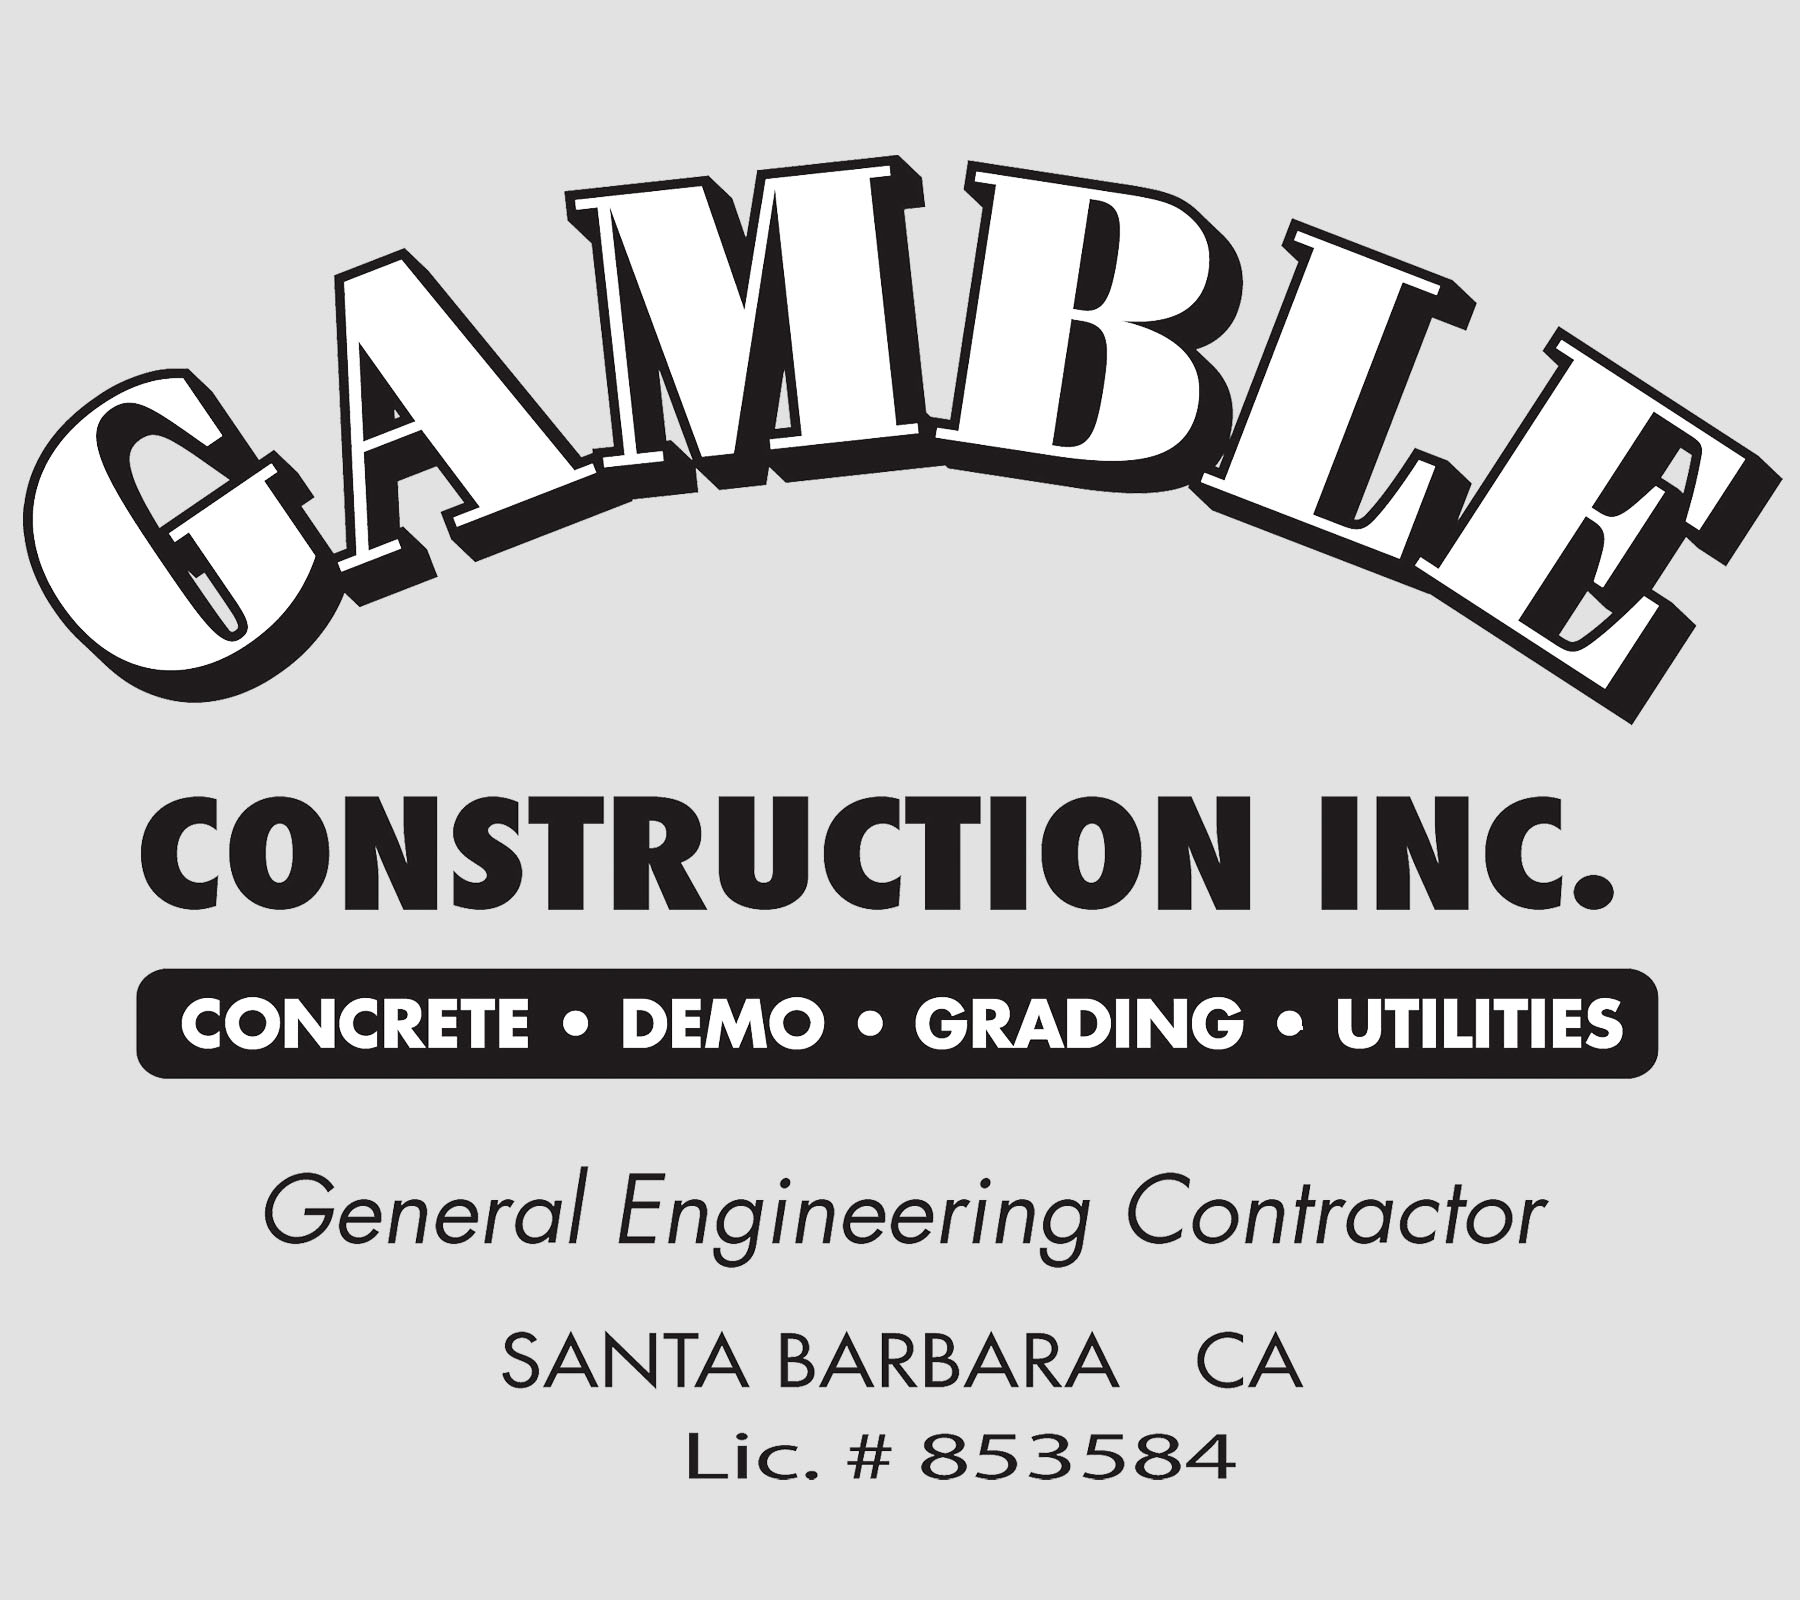 Gamble Construction Inc. Logo Photo Gallery